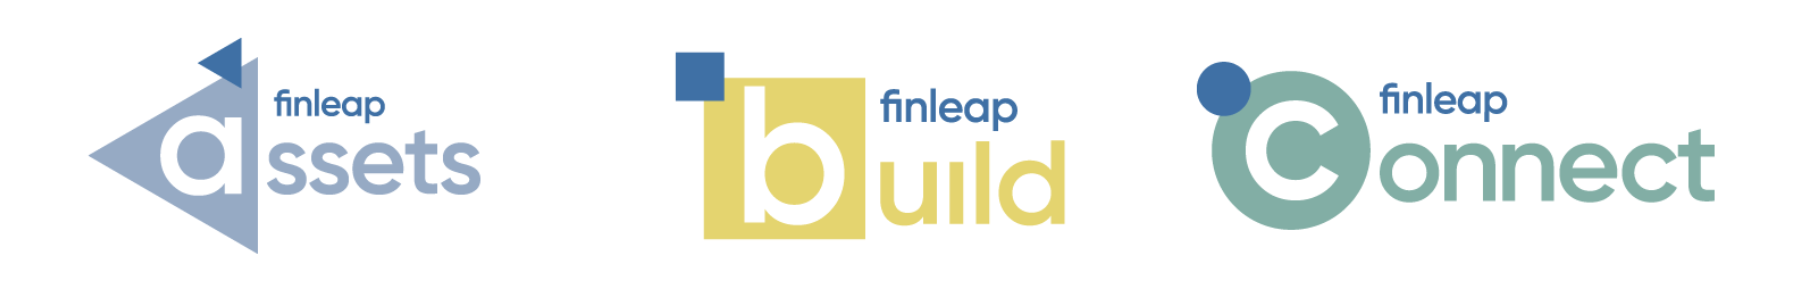 finleap abc